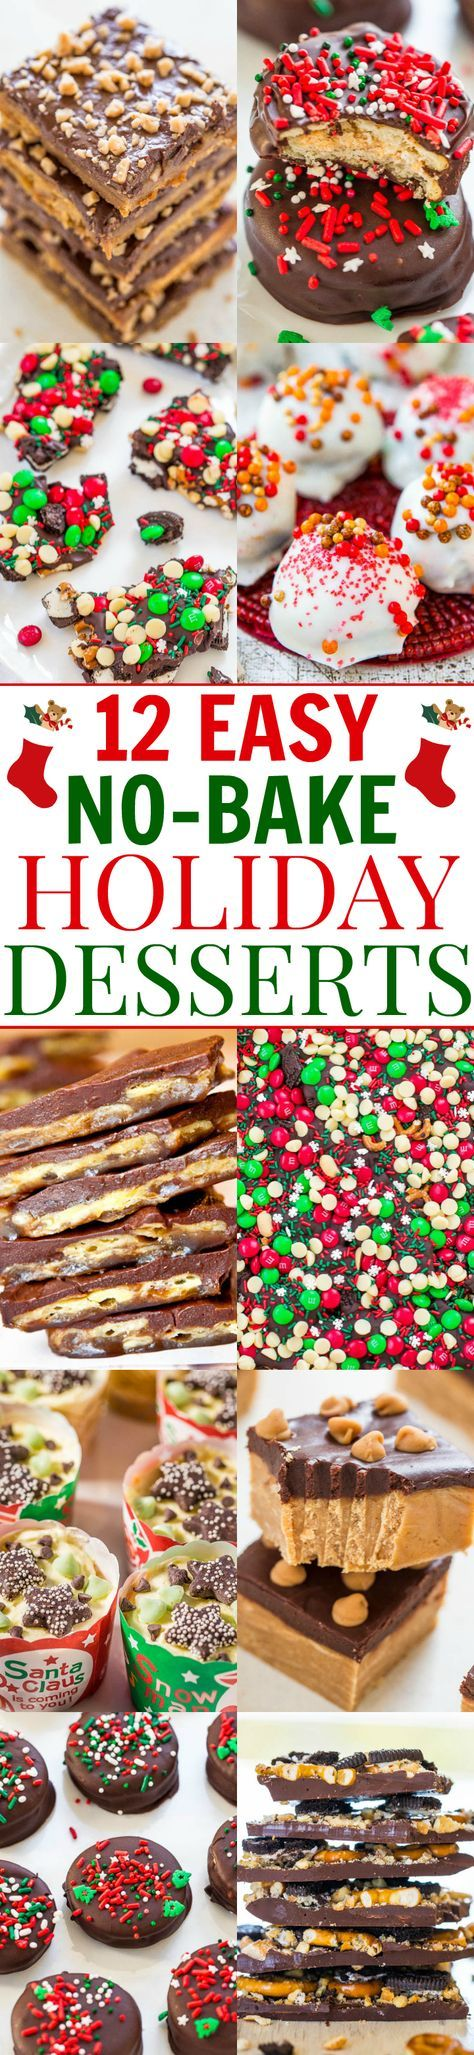 12 Easy No-Bake Holiday Desserts – Averie Cooks